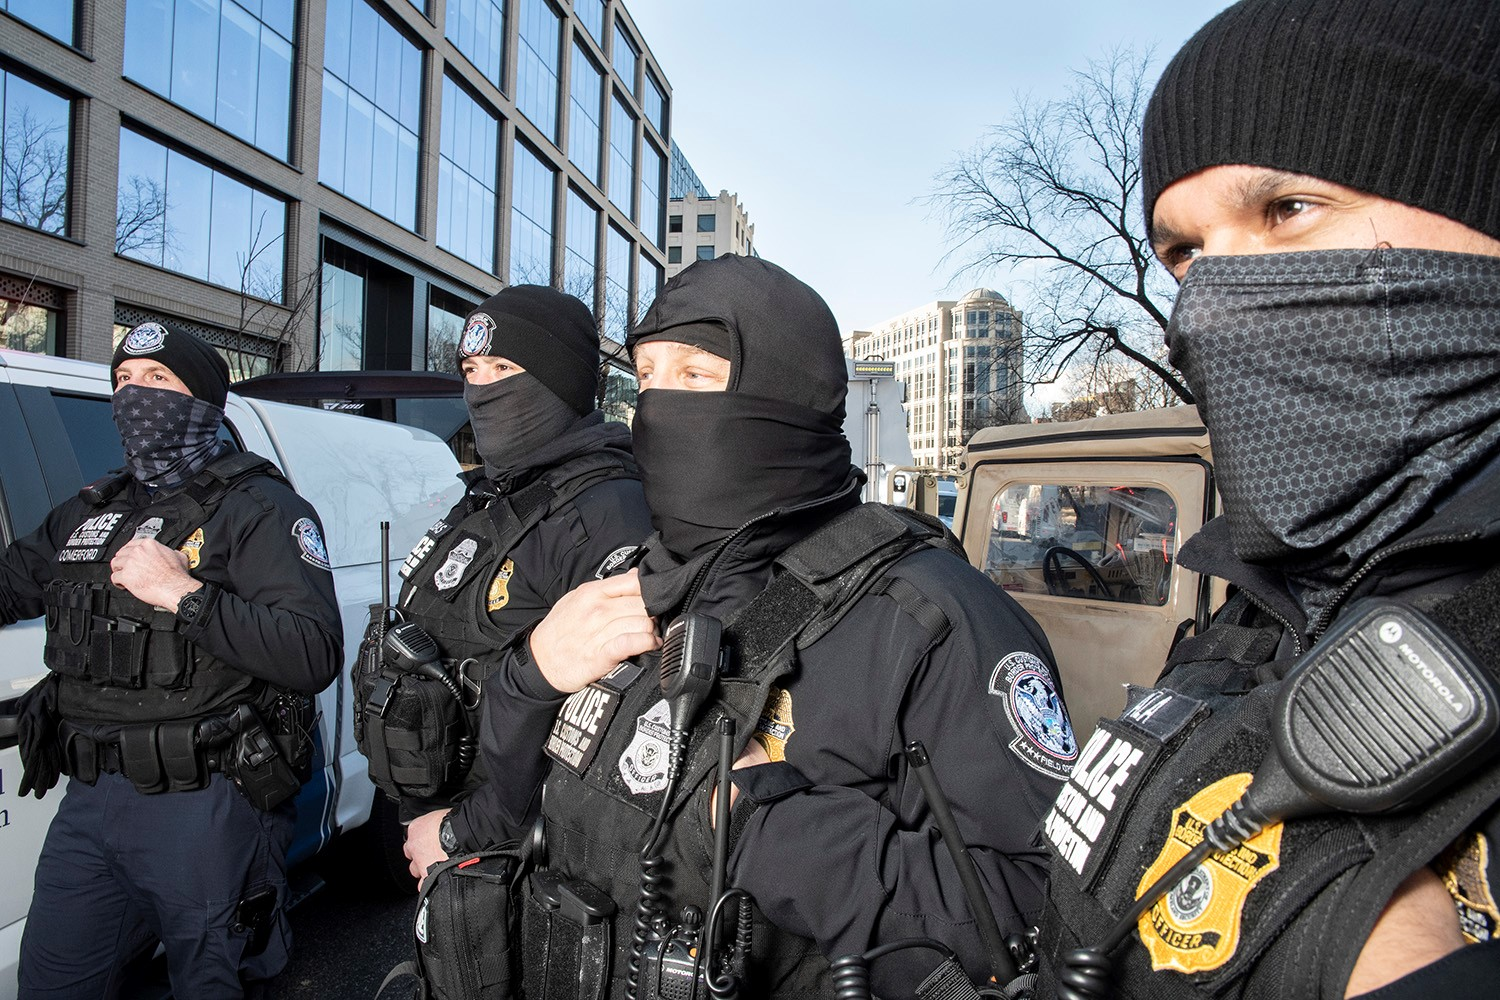 Four white men wearing black police uniforms and gear, black winter hats, and dark face masks, stand in front of law enforcement vehicles in the streets of downton D.C.